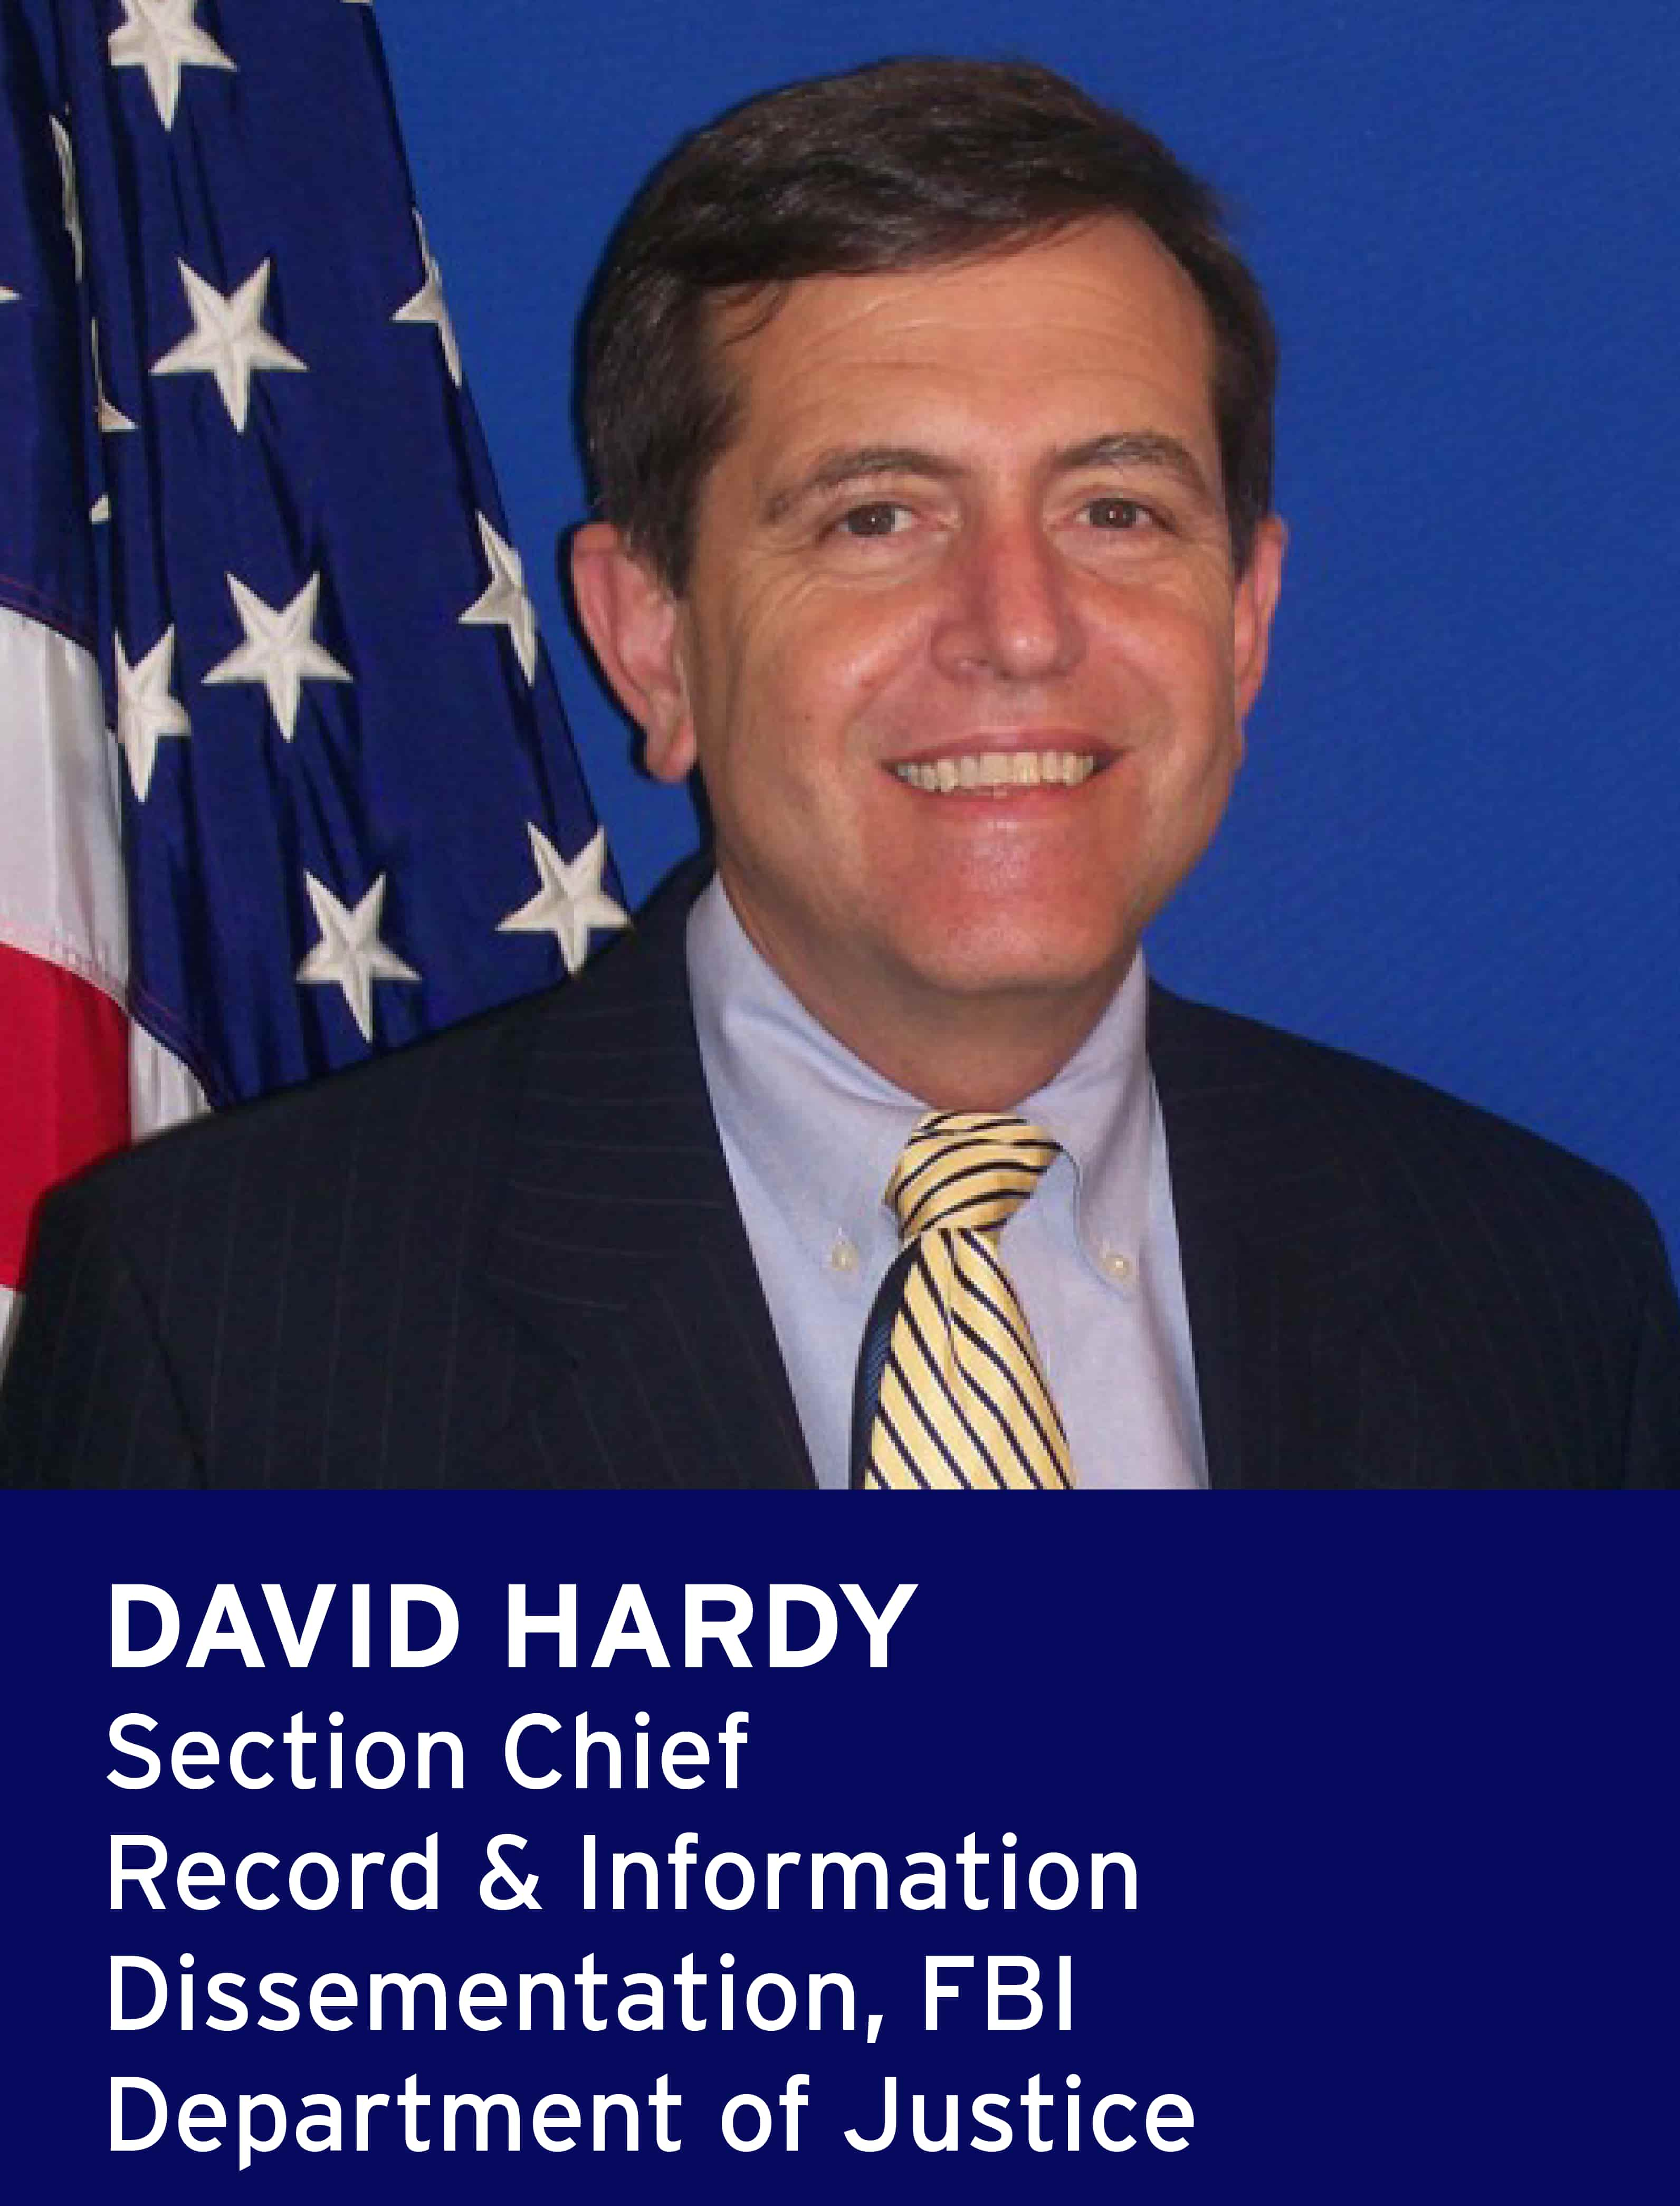 David Hardy, Section Chief, Record & Information Dissemination